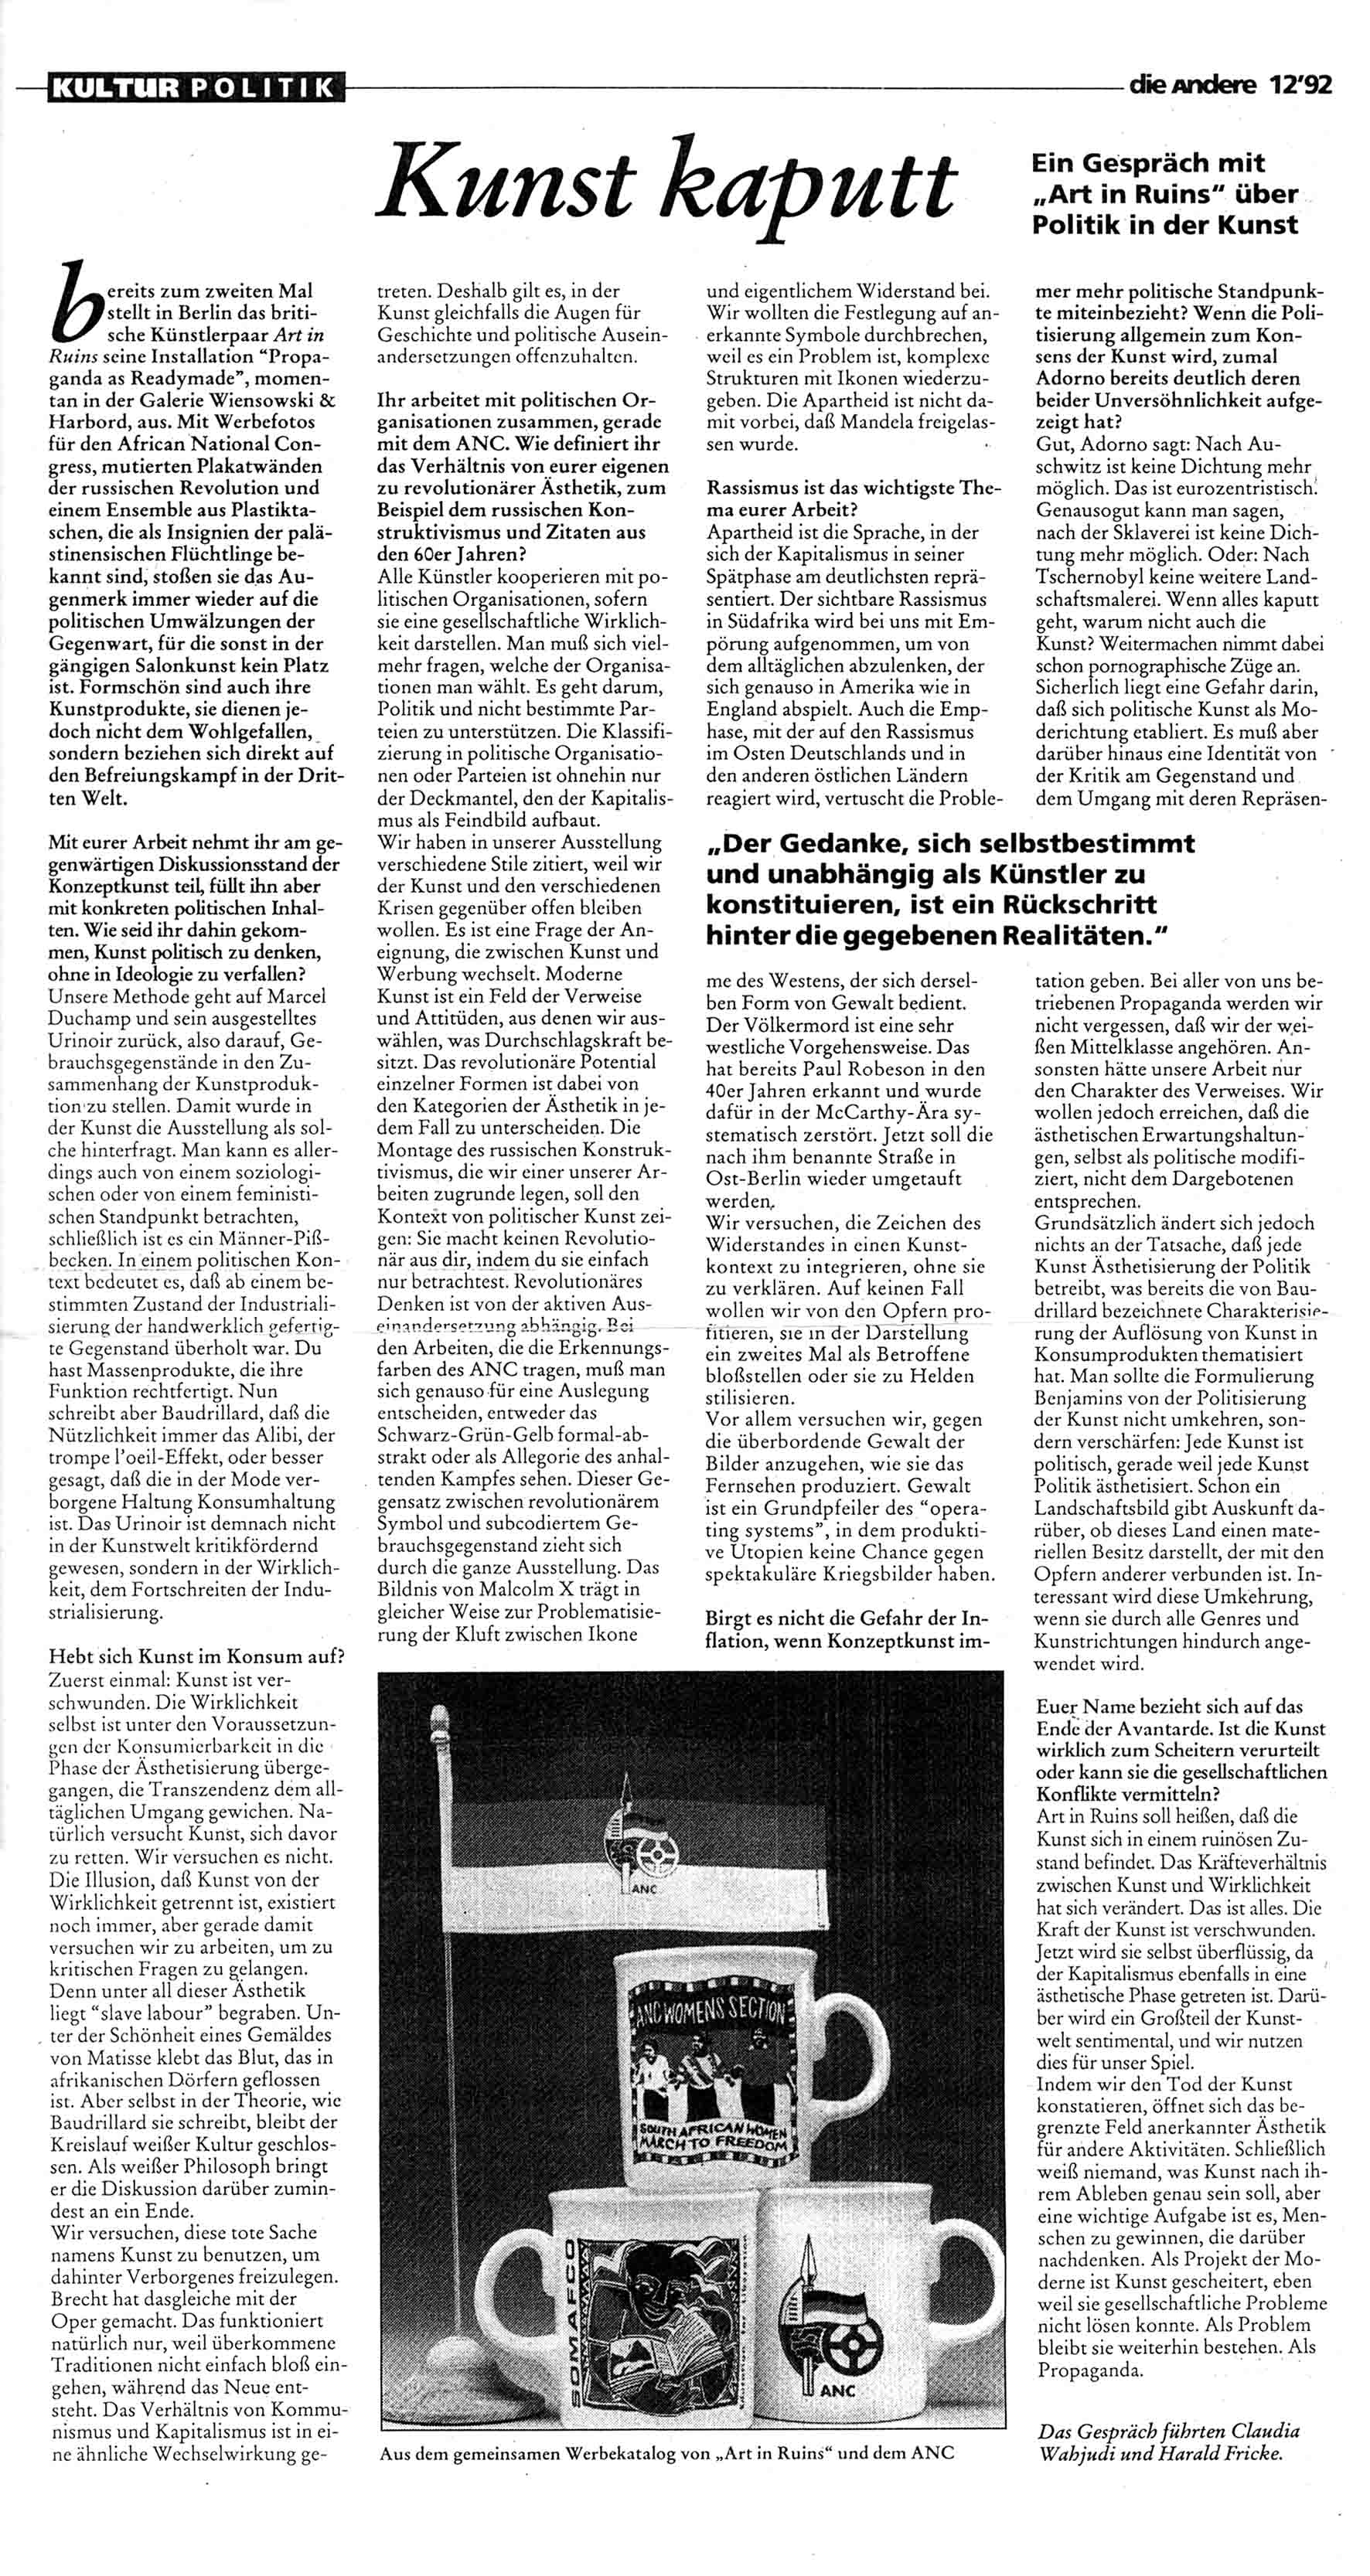 'KUNST KAPUTT' Interview by Harald Fricke and Claudia Wahjudi Die Andere  No 12  Mar 1992